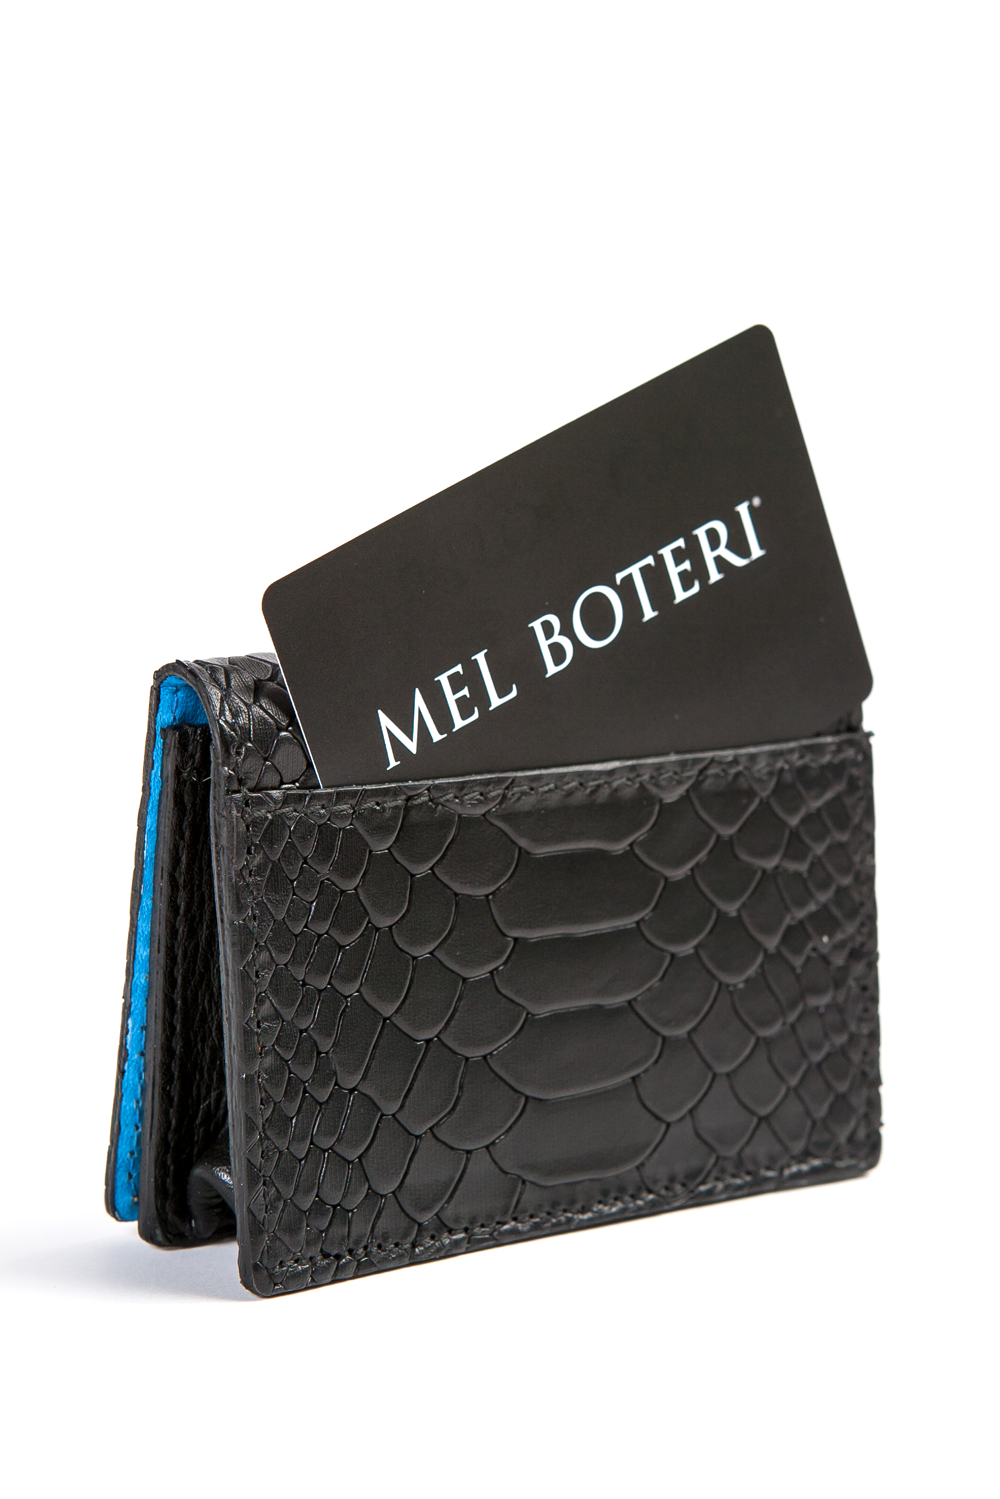 Mel Boteri | 'Nice To Meet You' Cardholder | Black Snake Print Leather | Back Pocket